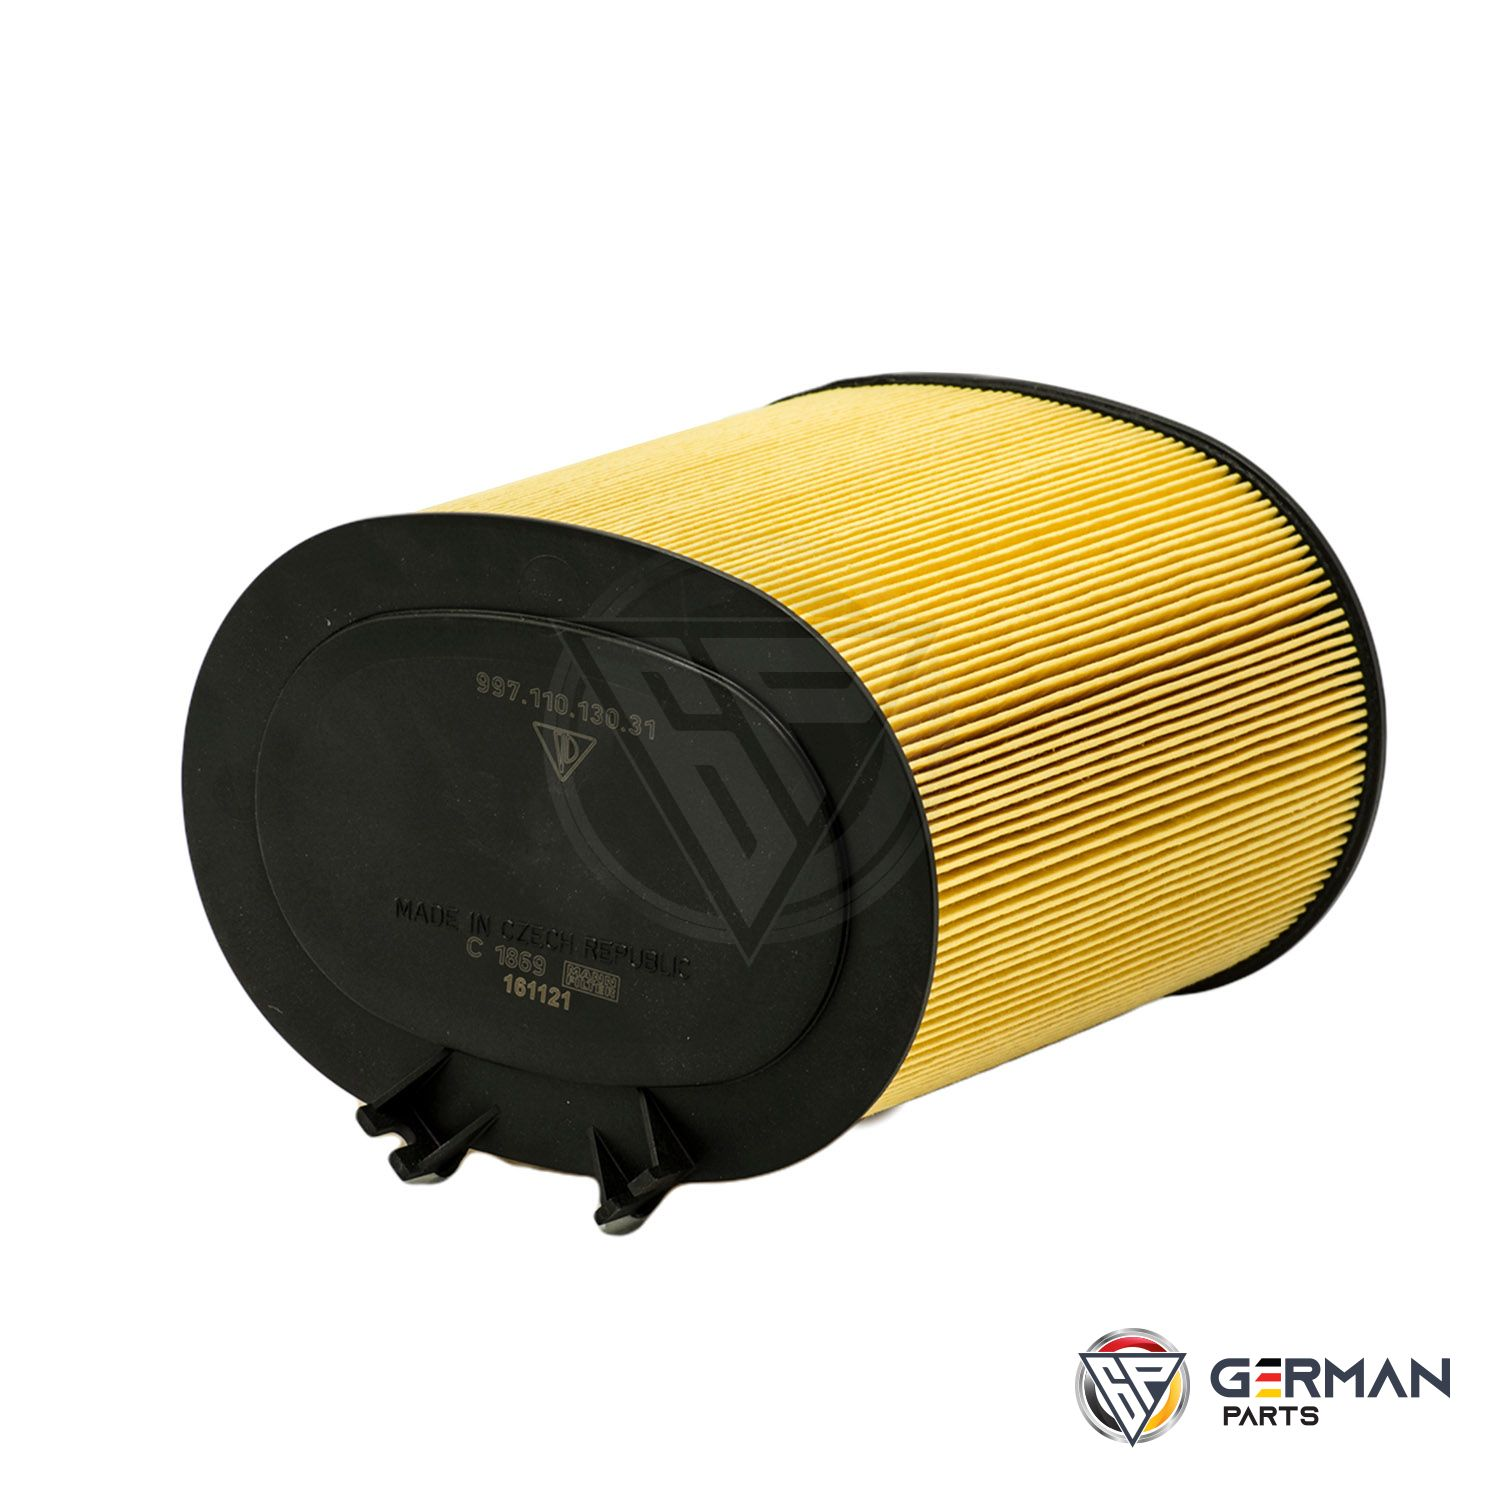 Buy Genuine Porsche Air Filter 99711013030 - German Parts